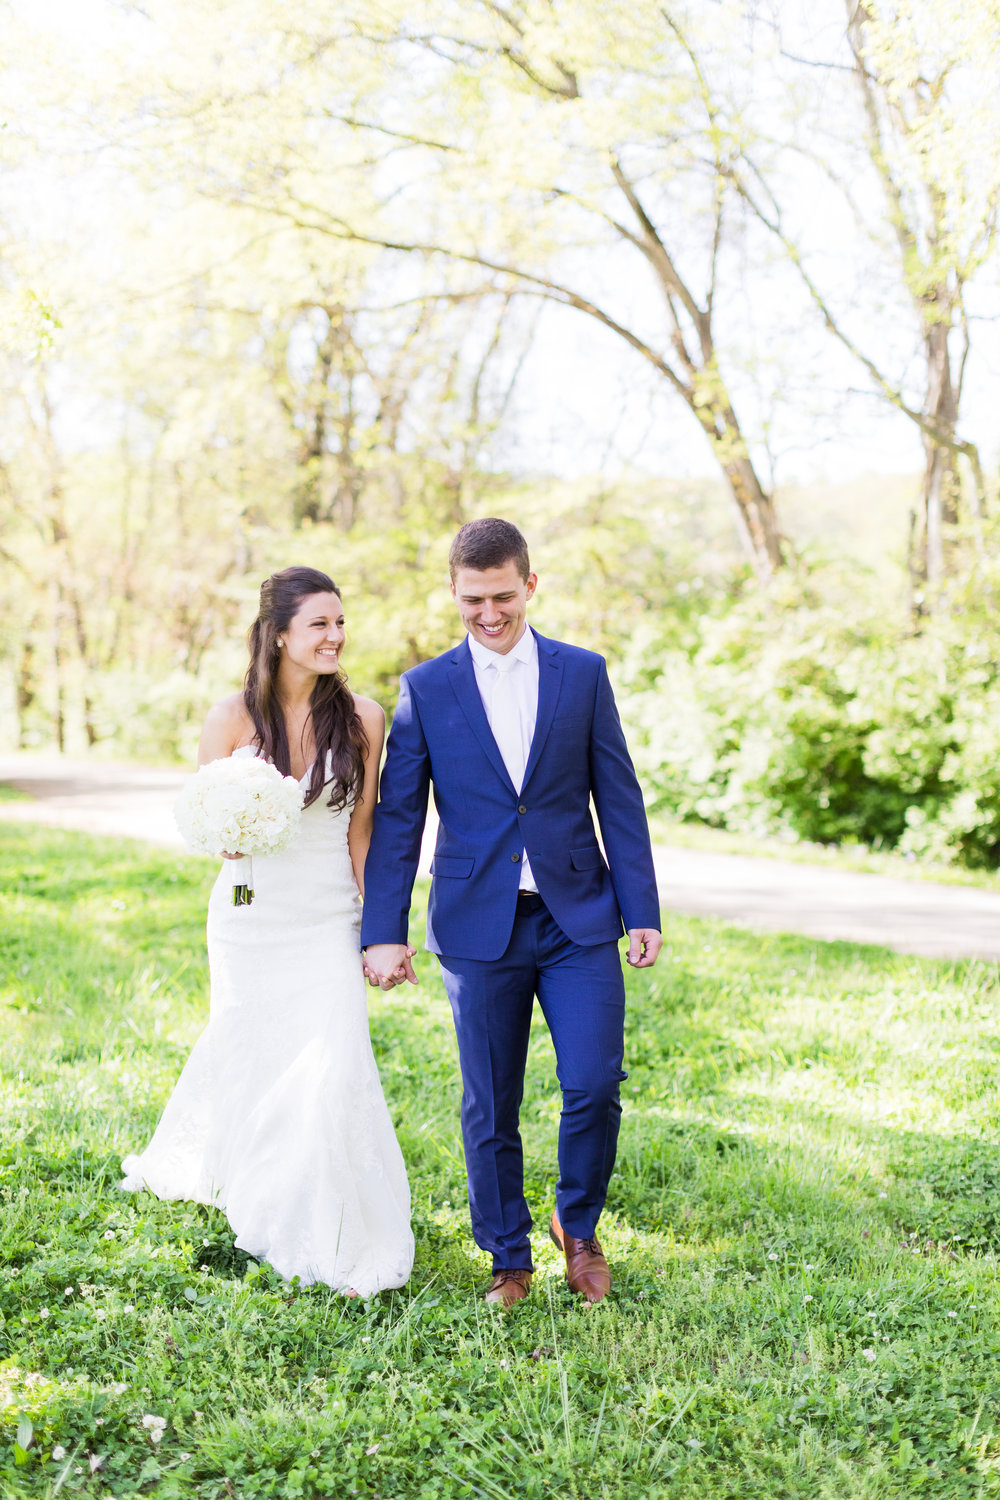 Hannah + Justin | St. Henry's Church